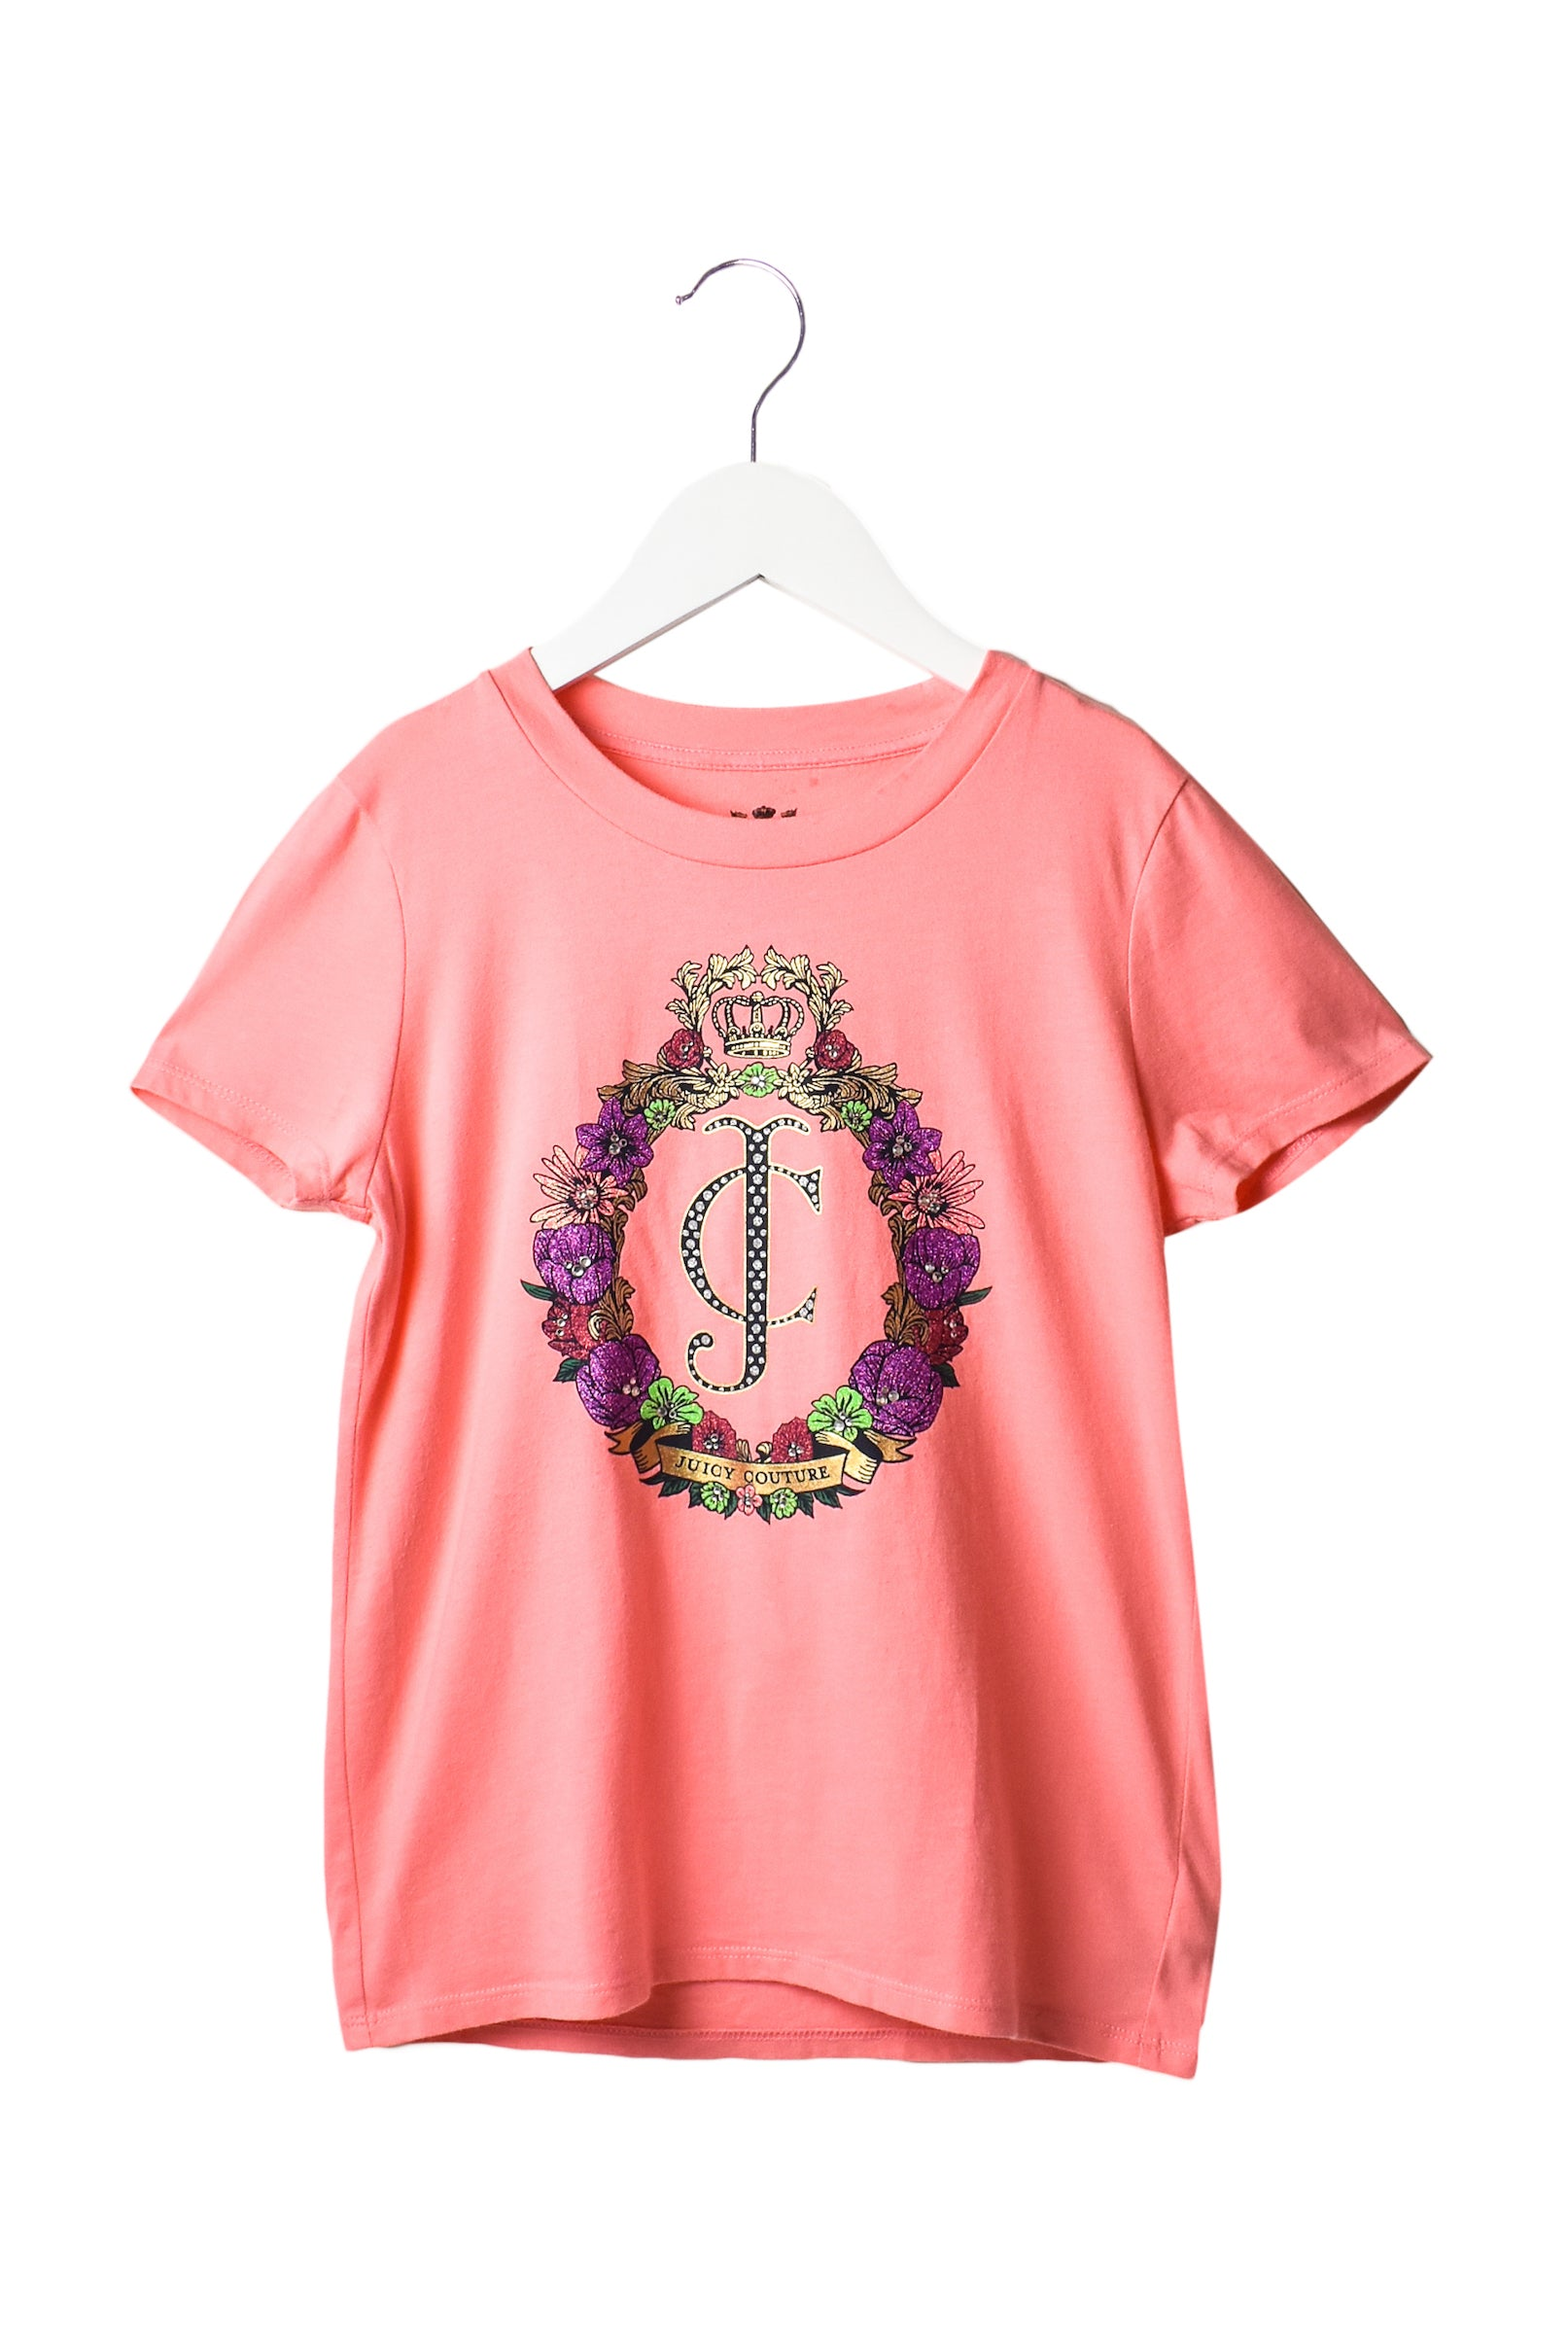 10006126 Juicy Couture Kids~T-Shirt 10 at Retykle